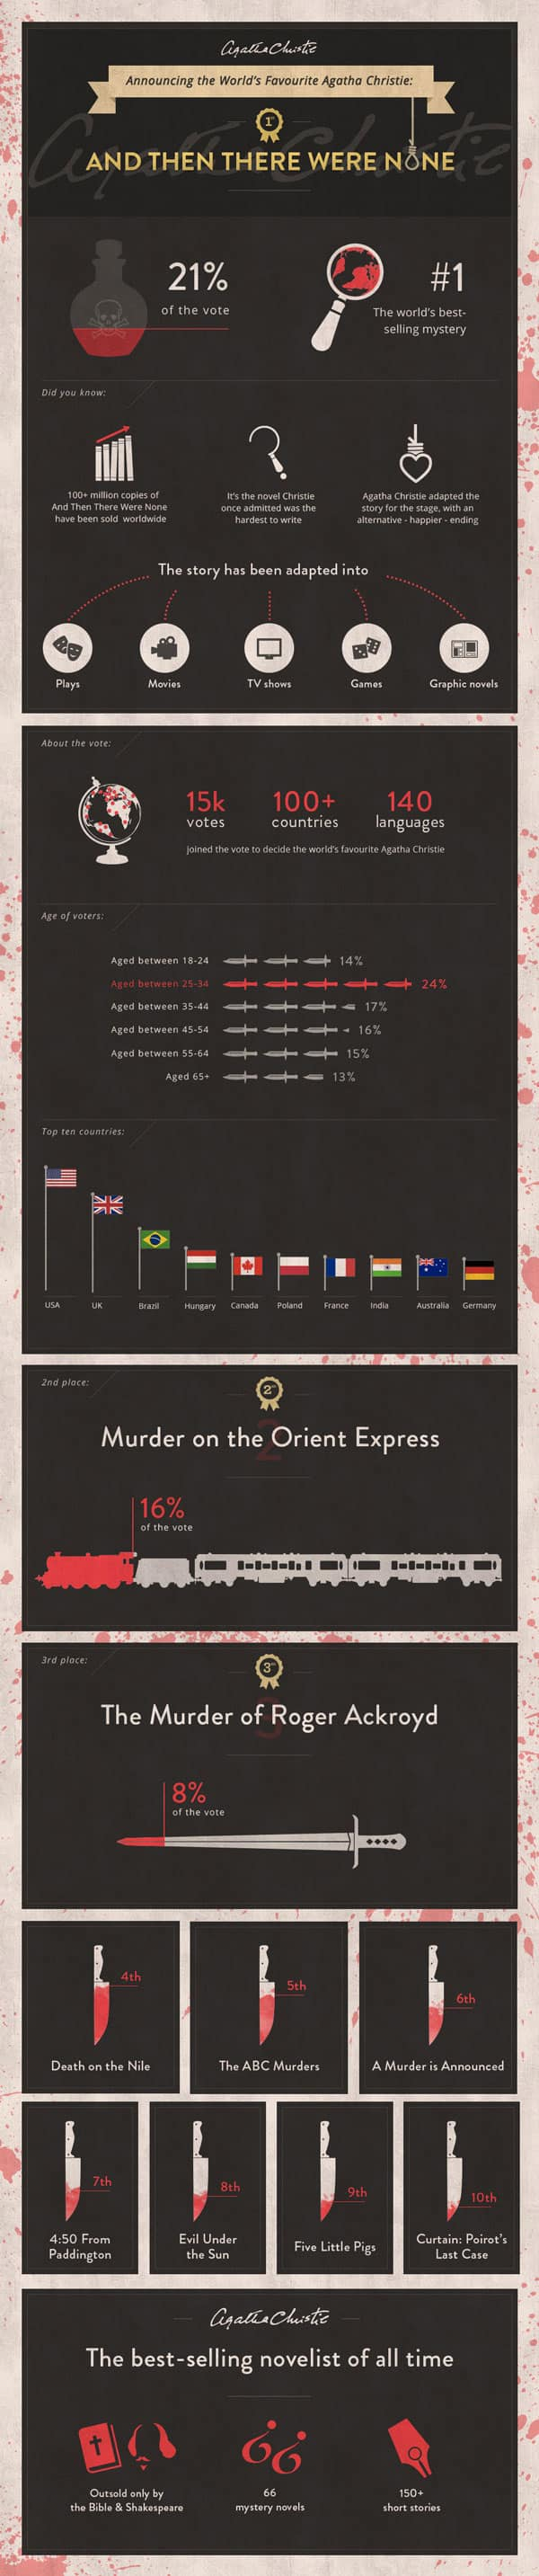 agathaWorlds_Favourite_Christie_Infographic